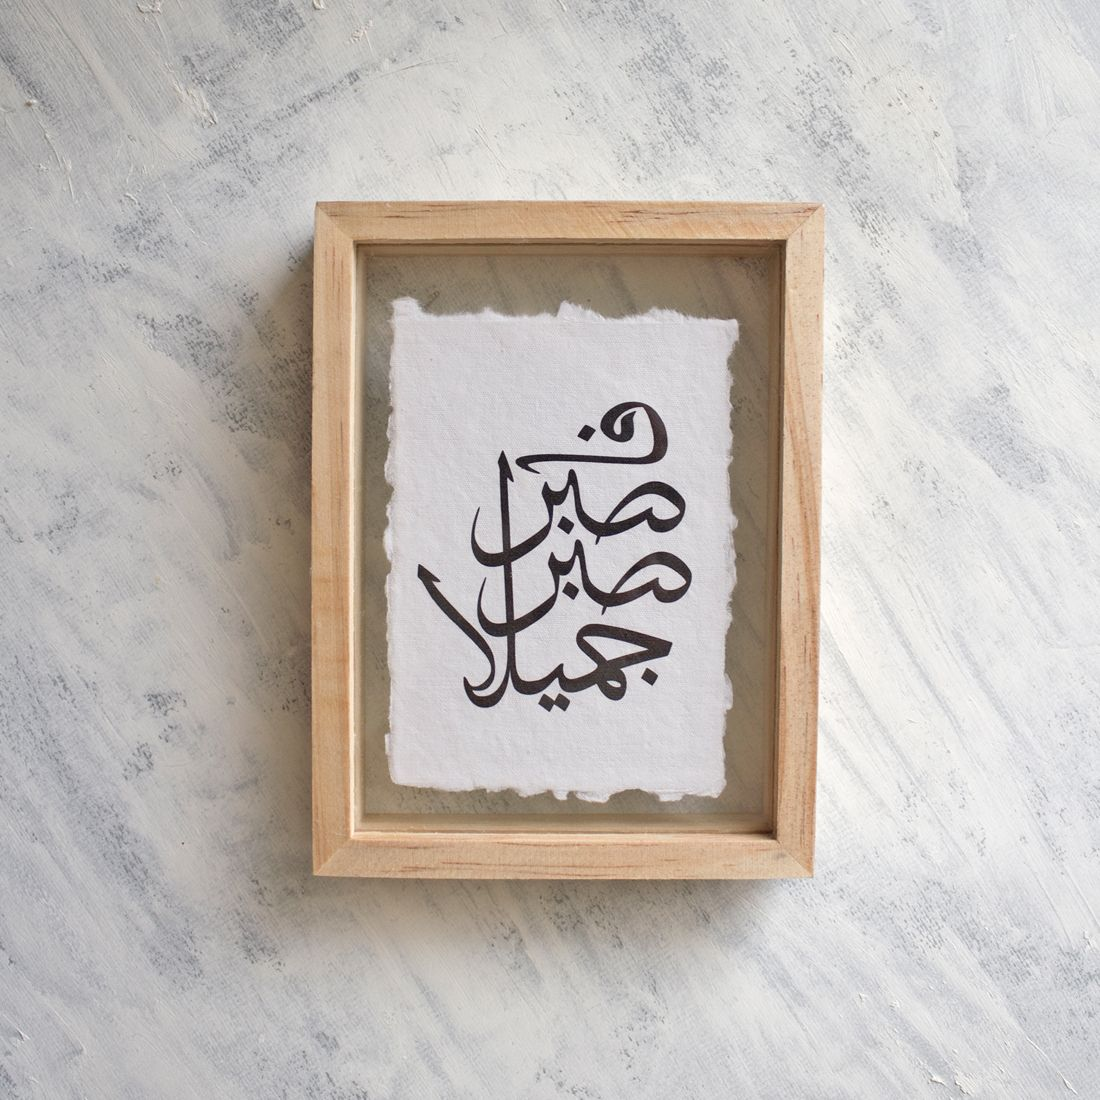 ف اص ب ر ص ب ر ا ج م يل ا Be Patient With Gracious Patience Wooden Frame In Arabic Calligraphy Little Majlis Calligraphie